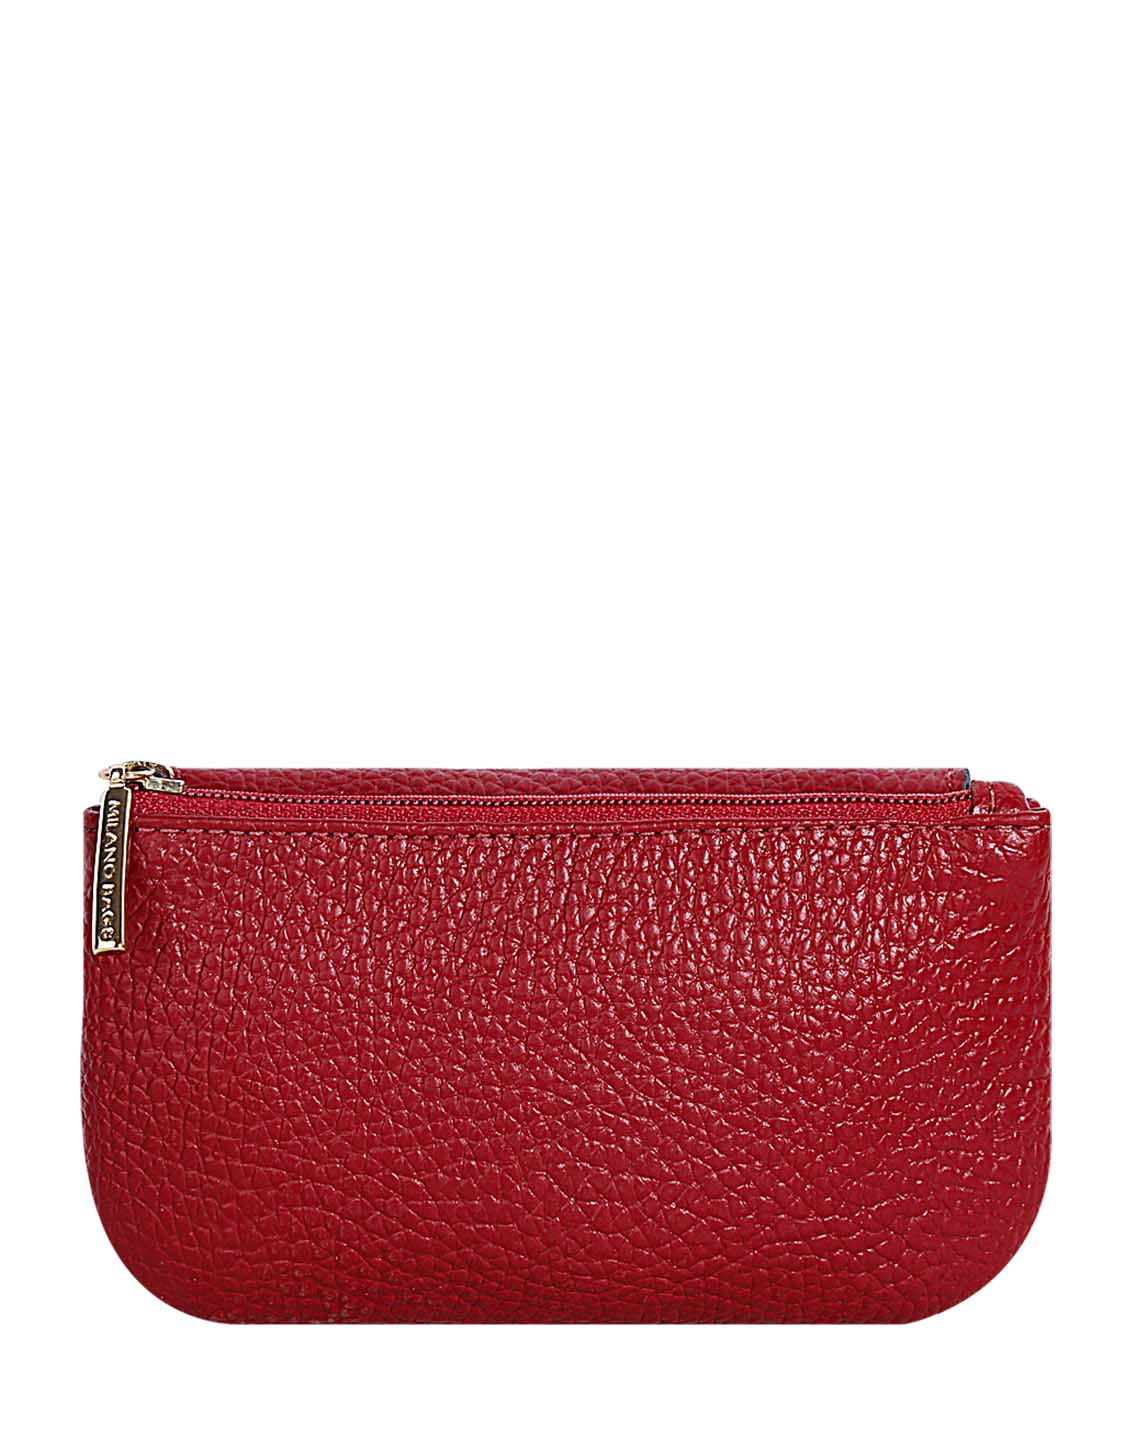 Monedero M-64 Color Rojo